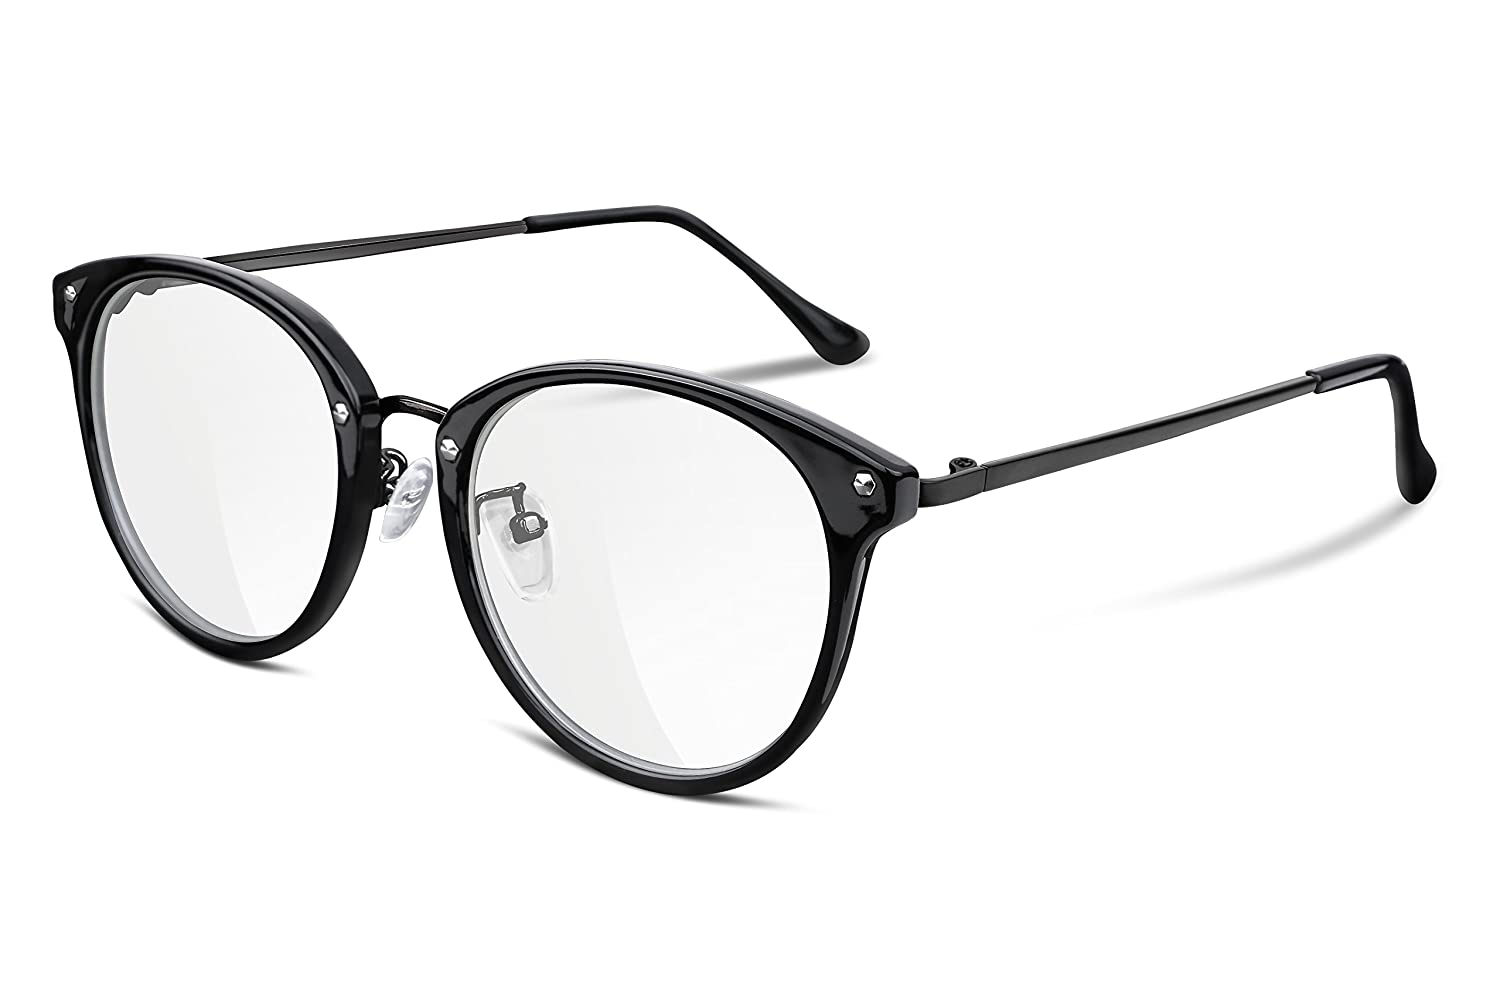 53525256a37 FEISEDY Clear Lens Glasses Frame Cozy Composite Frame Eyewear Women Men  B2260  Amazon.co.uk  Clothing